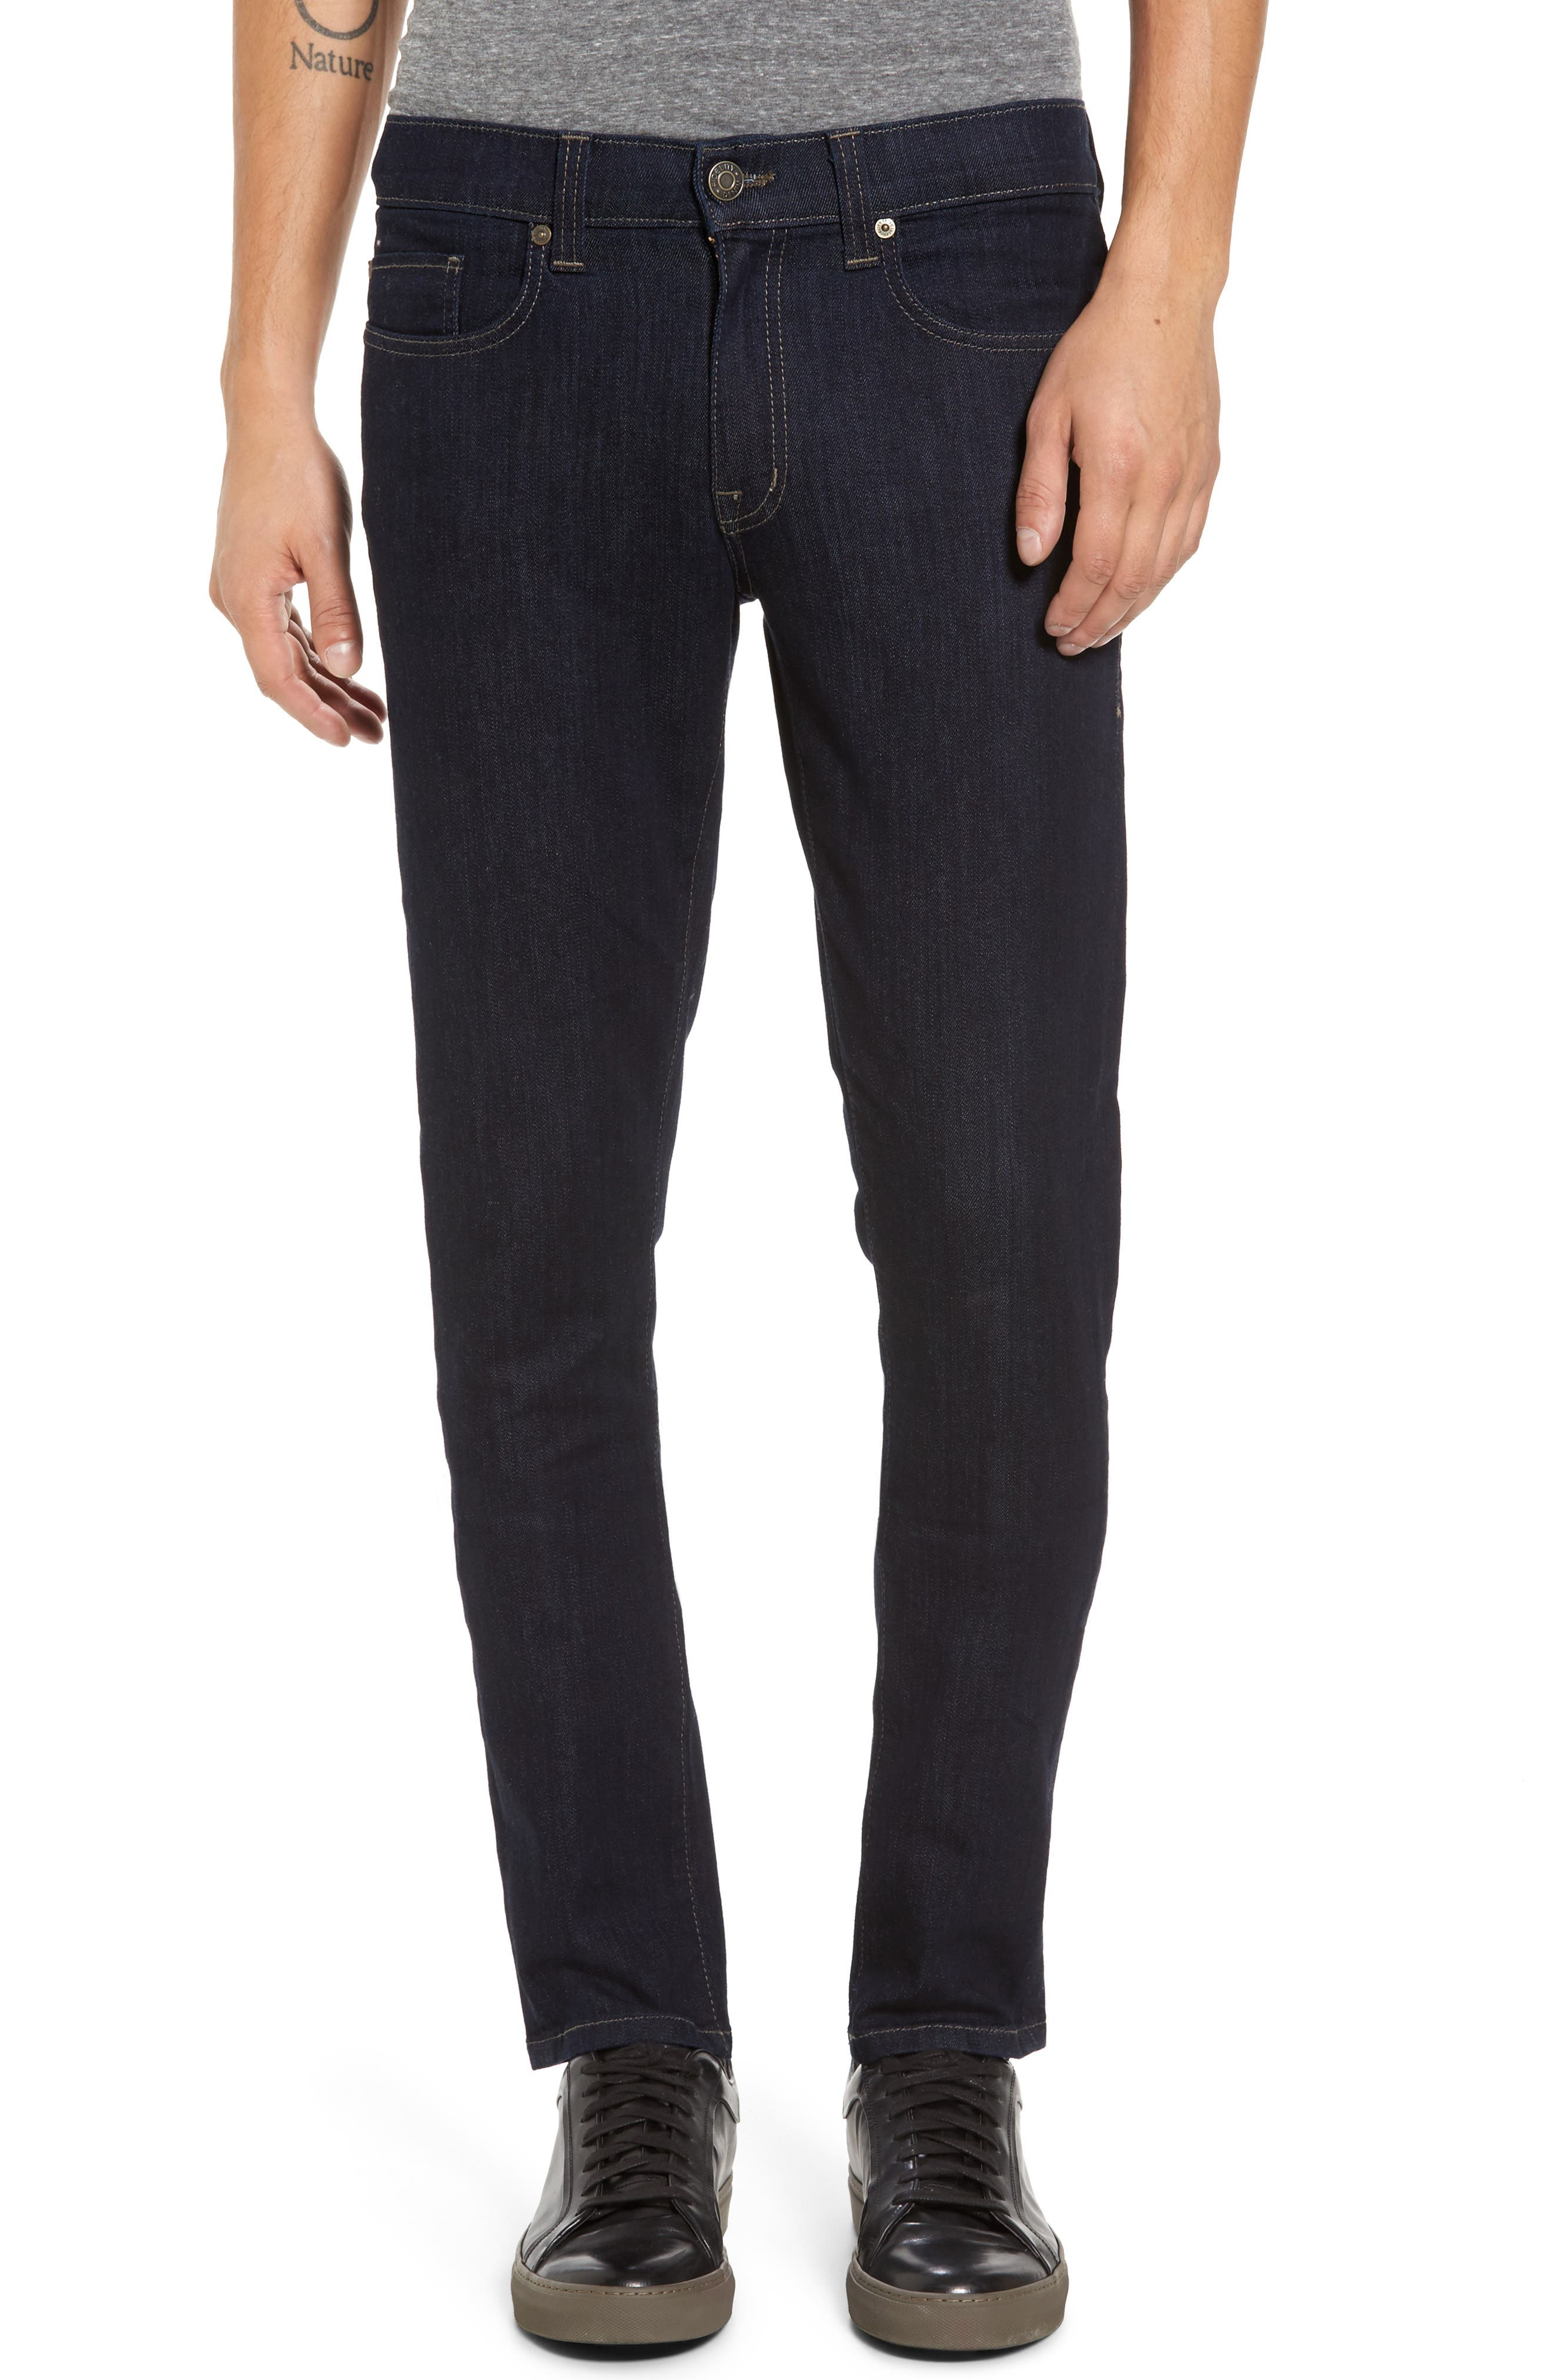 Main Image - Fidelity Denim Vantage Skinny Fit Jeans (Galaxy Rinse)